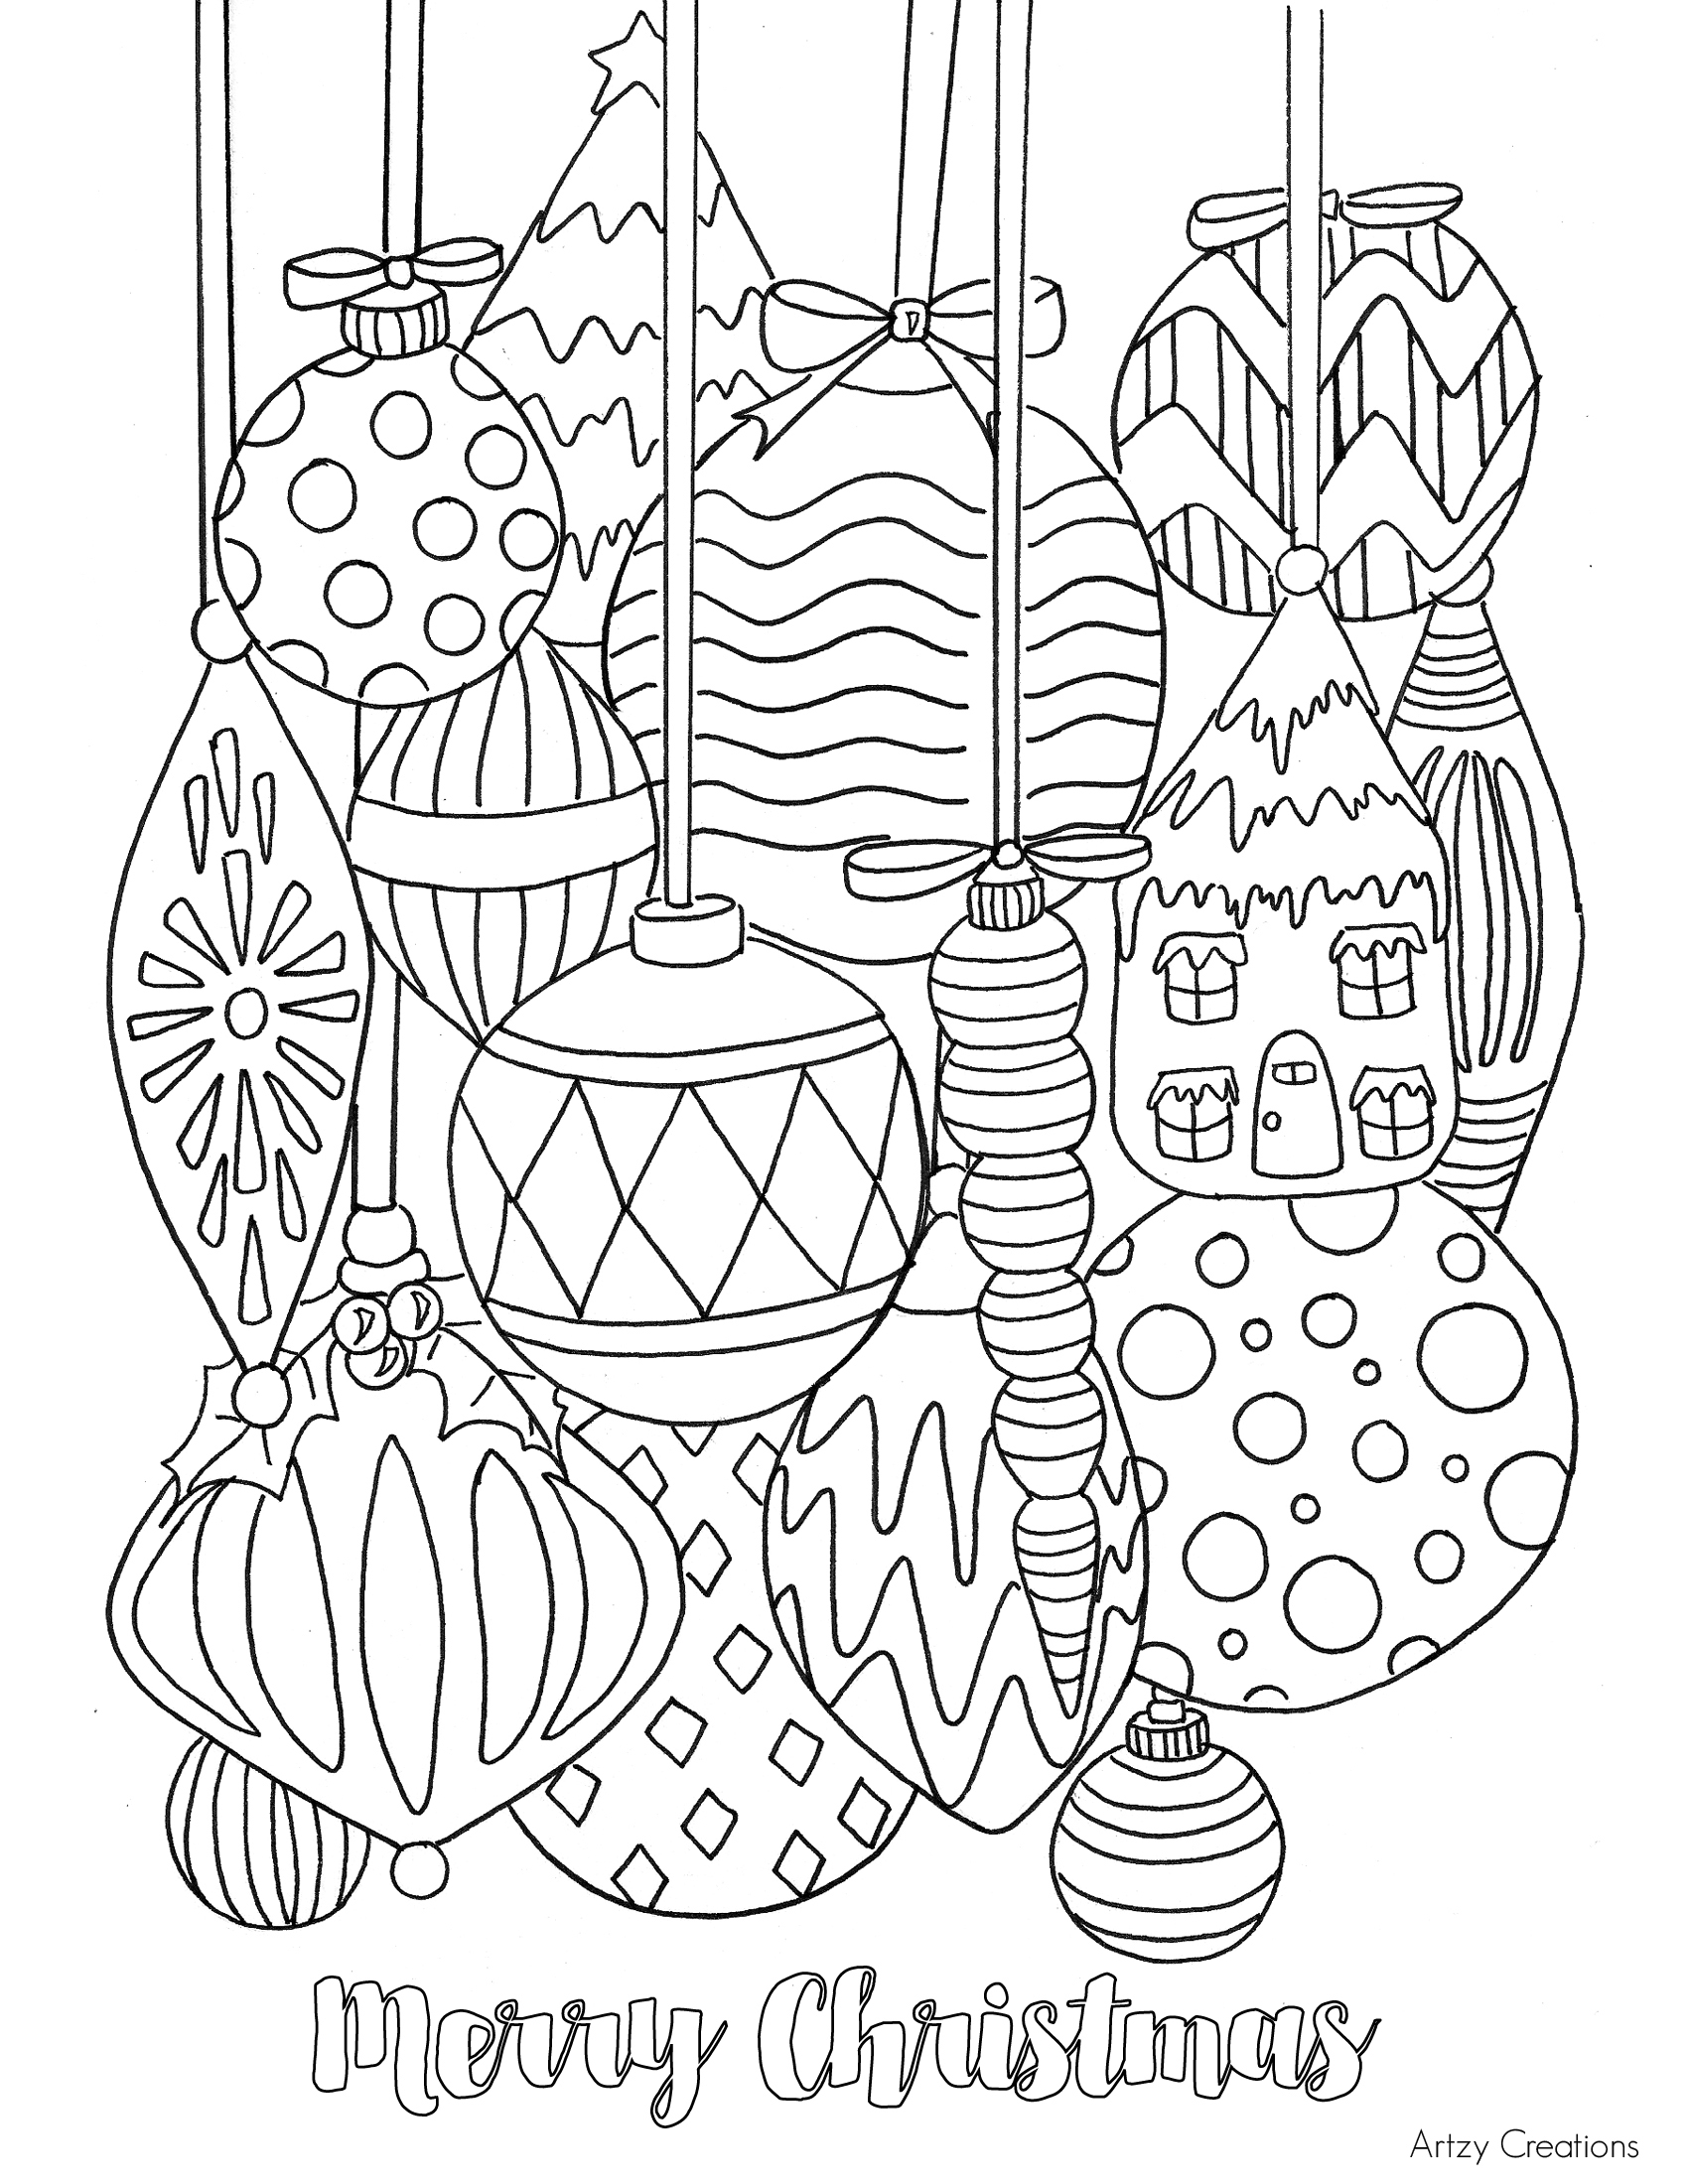 Christmas Coloring In Pictures To Print With Pages Free Books